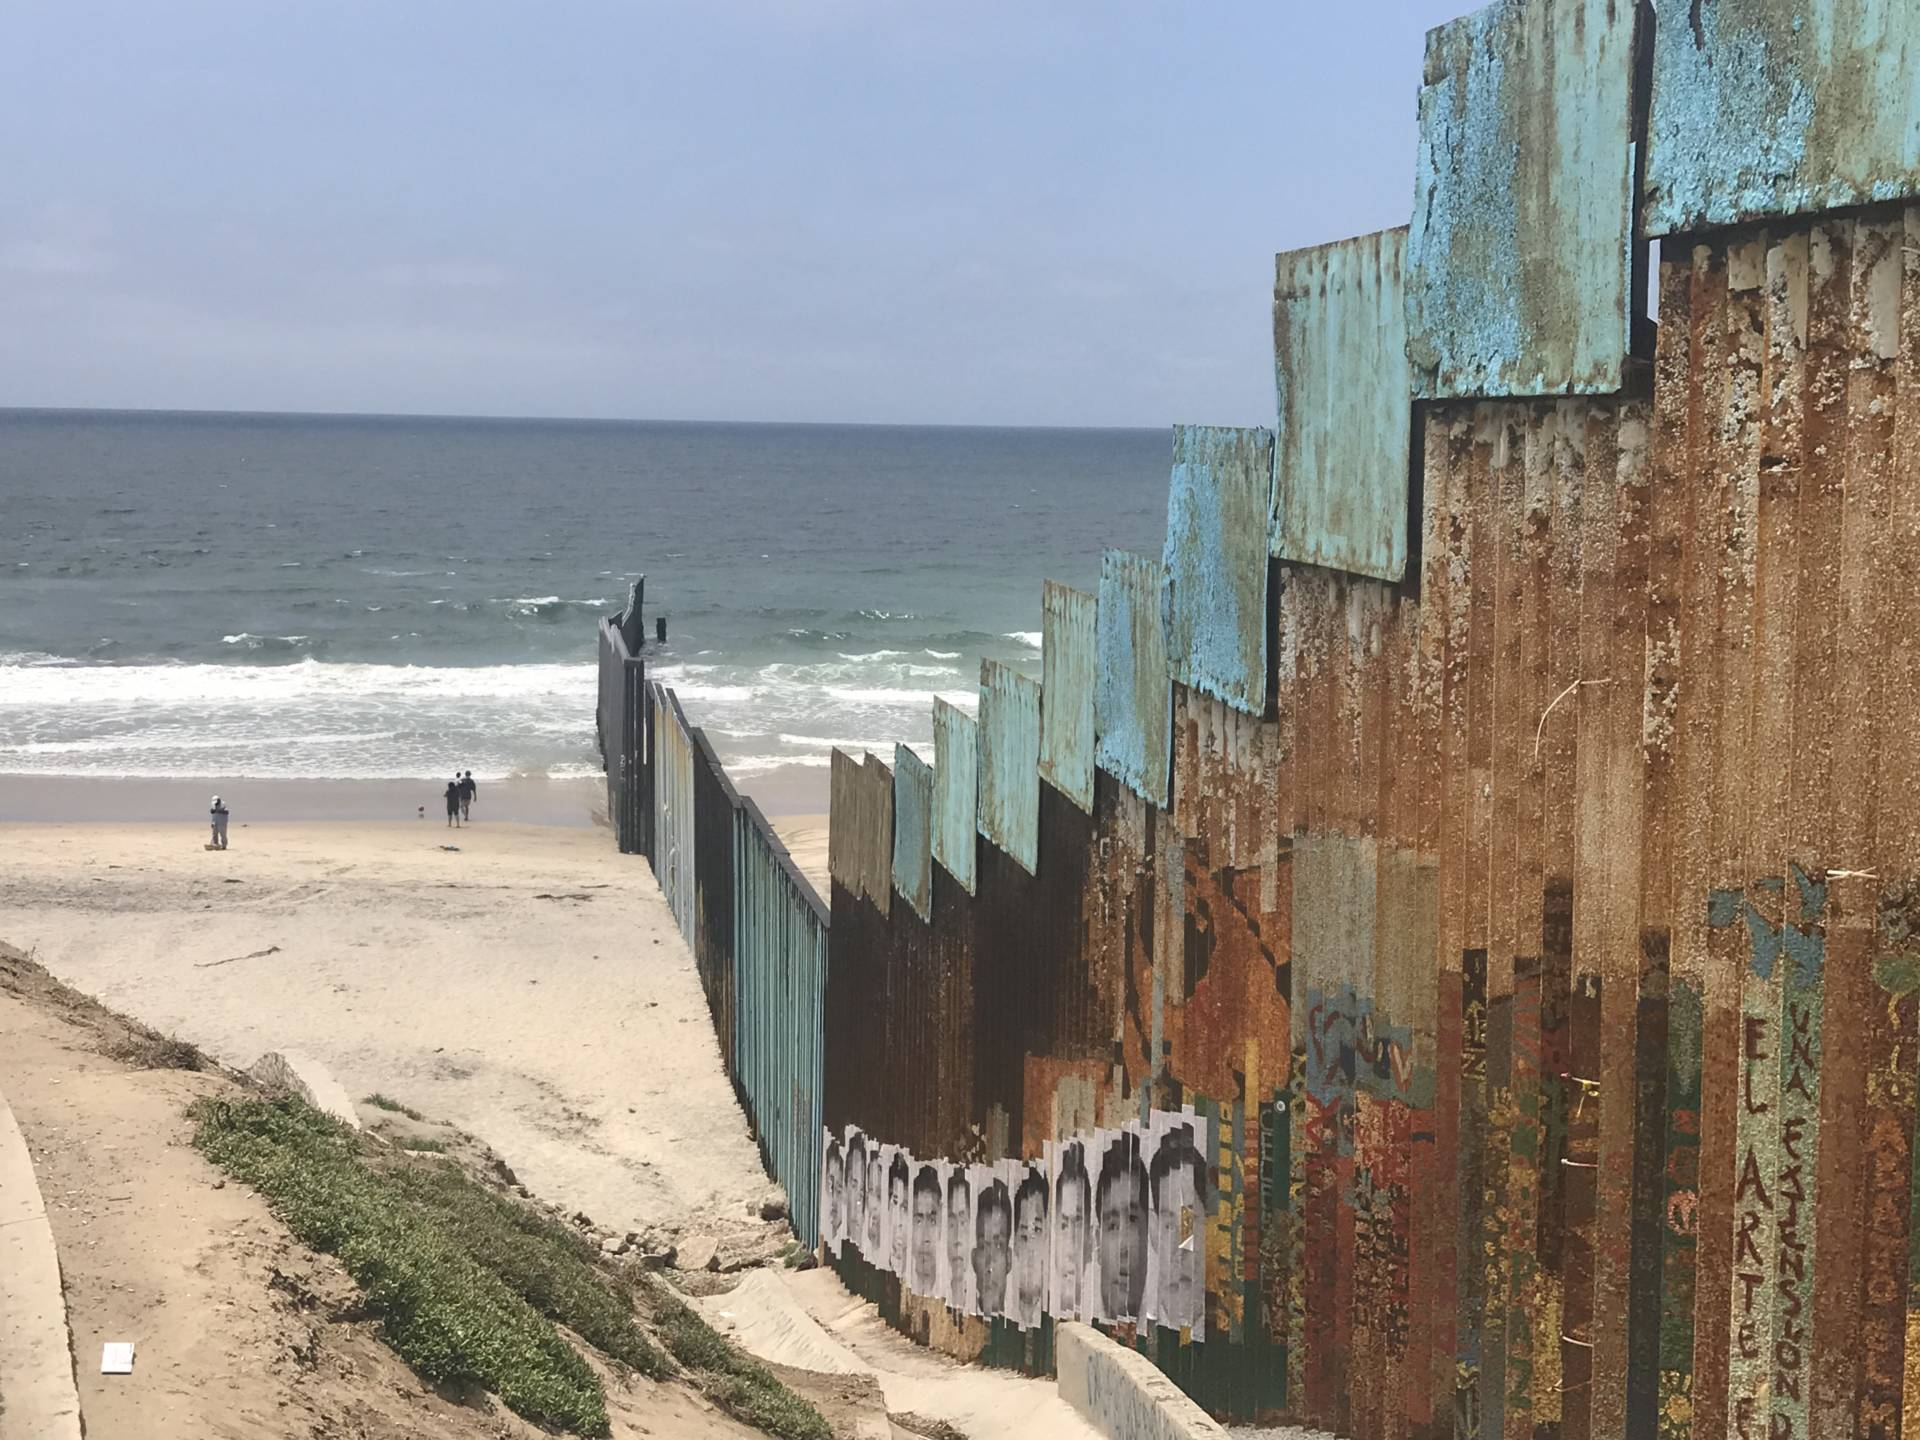 The Friendship Park wall runs into the Pacific. KQED/Polly Stryker.